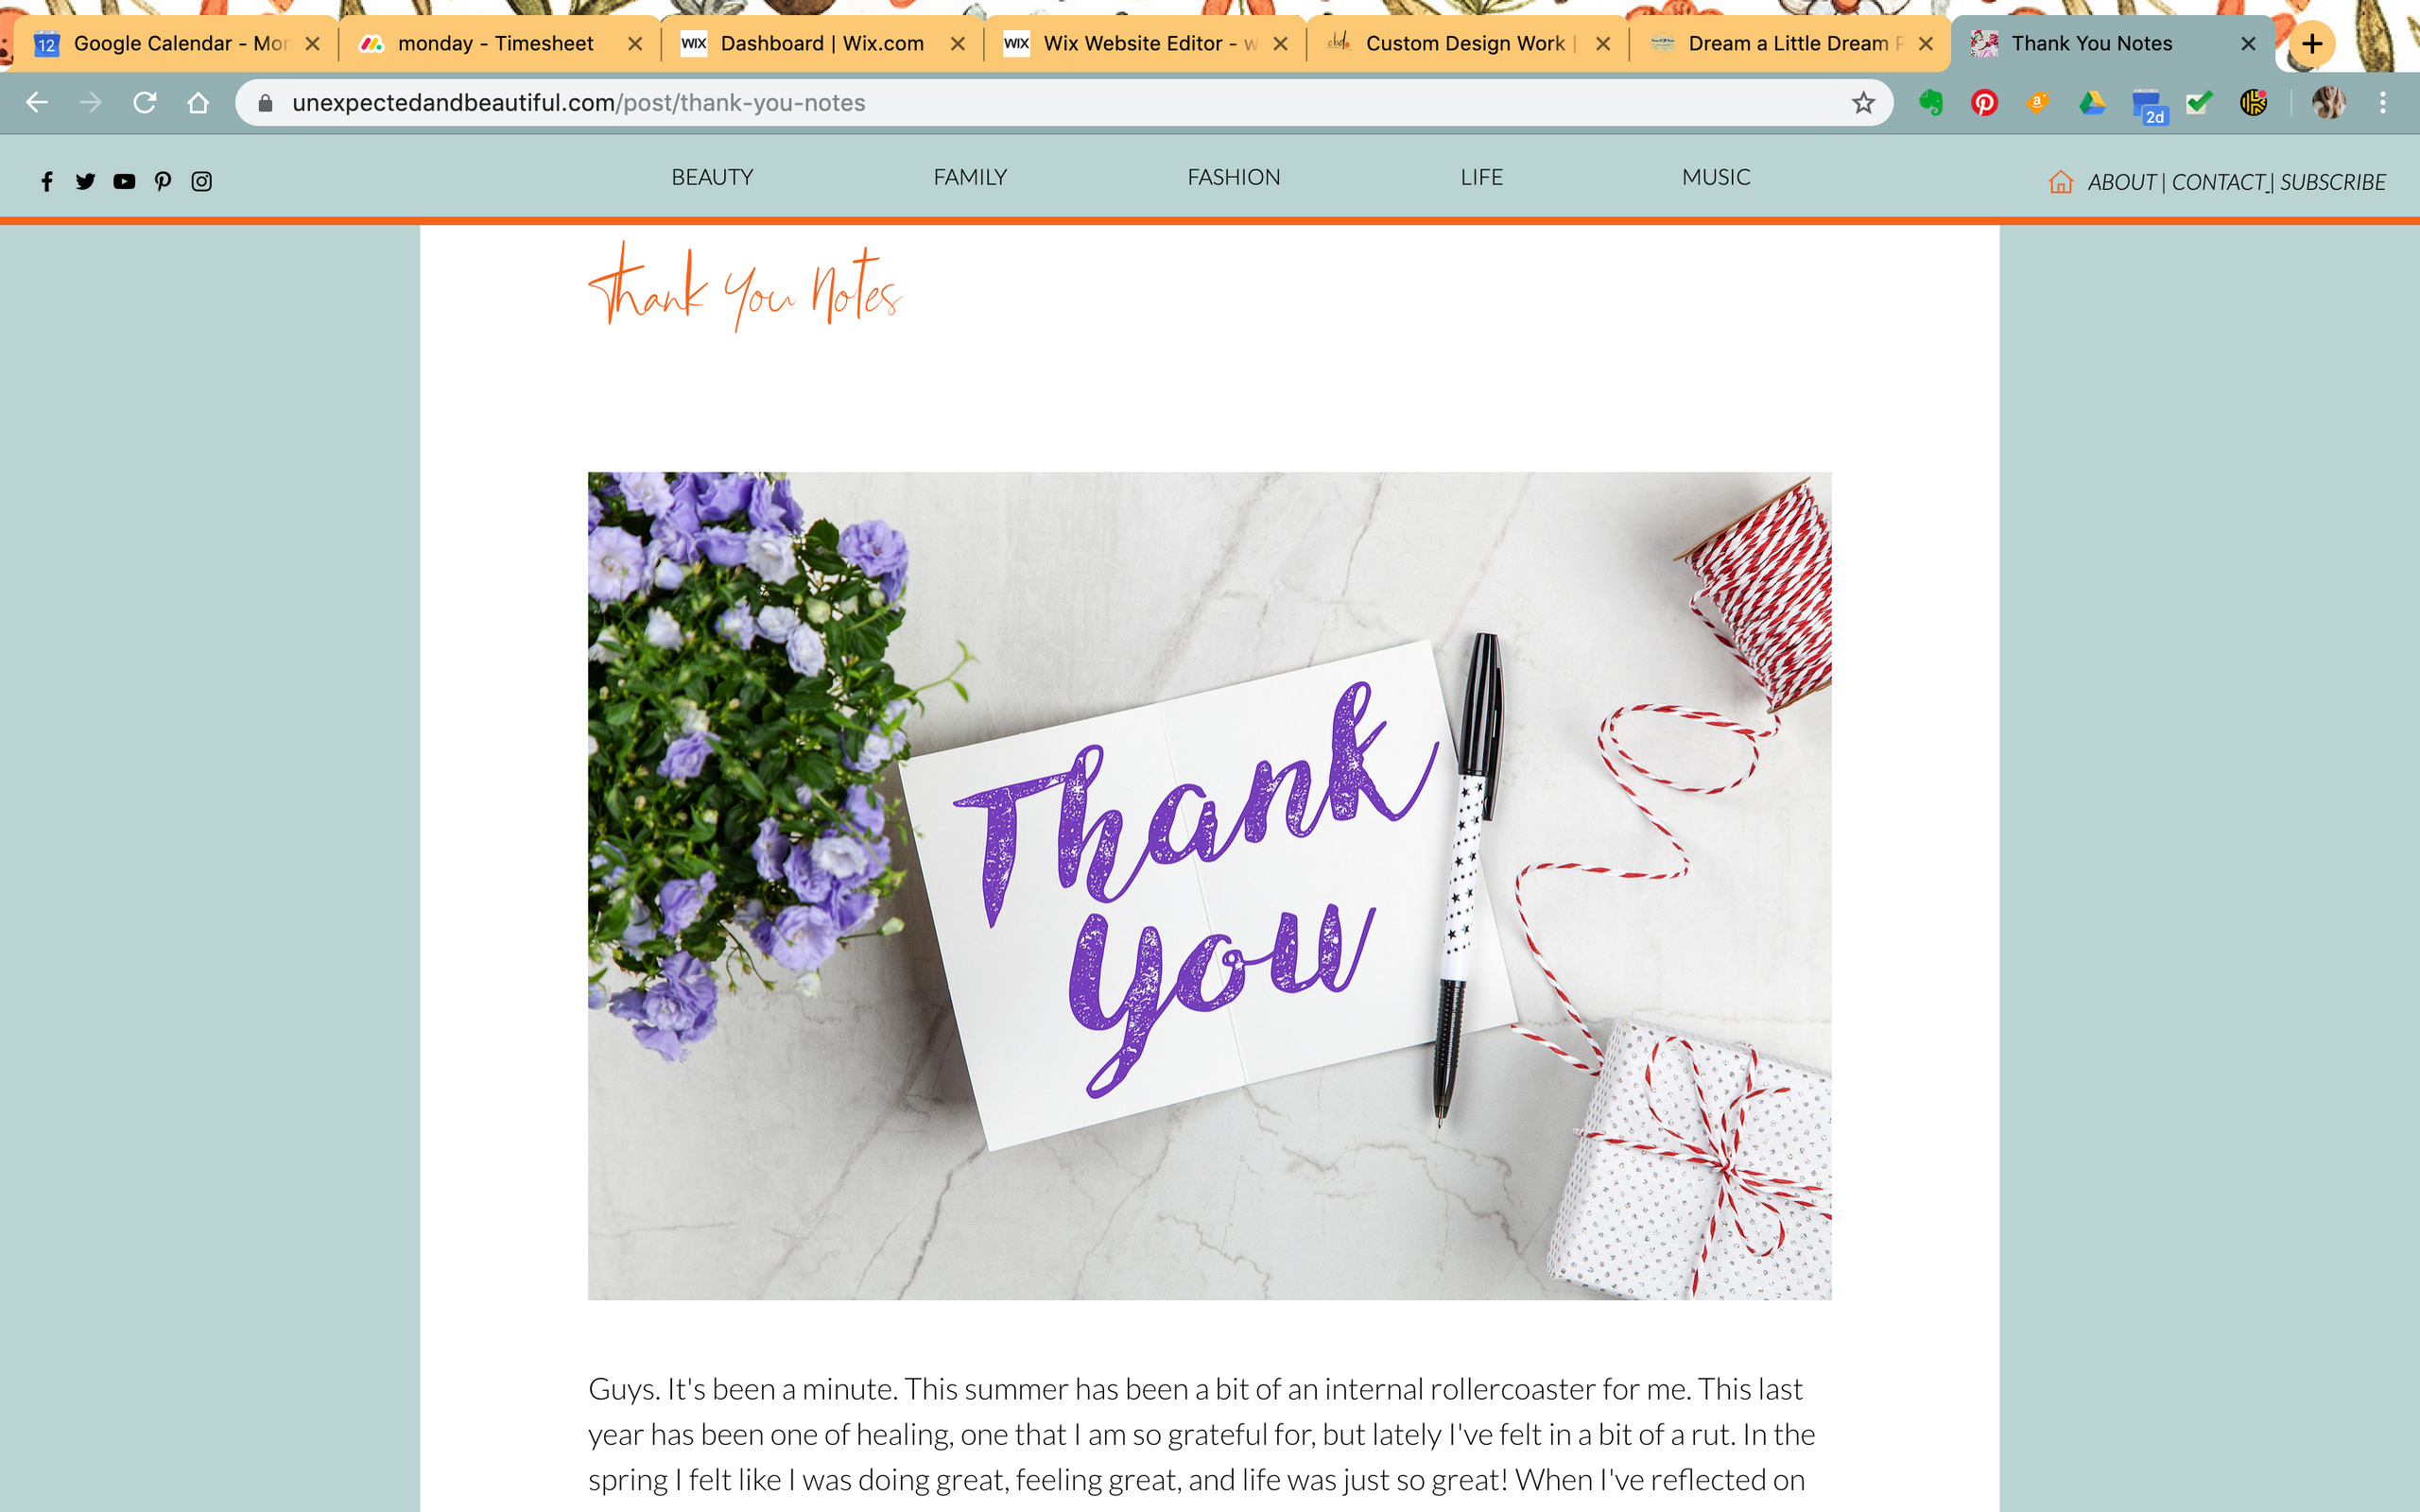 Unexpected and Beautiful Blog Design